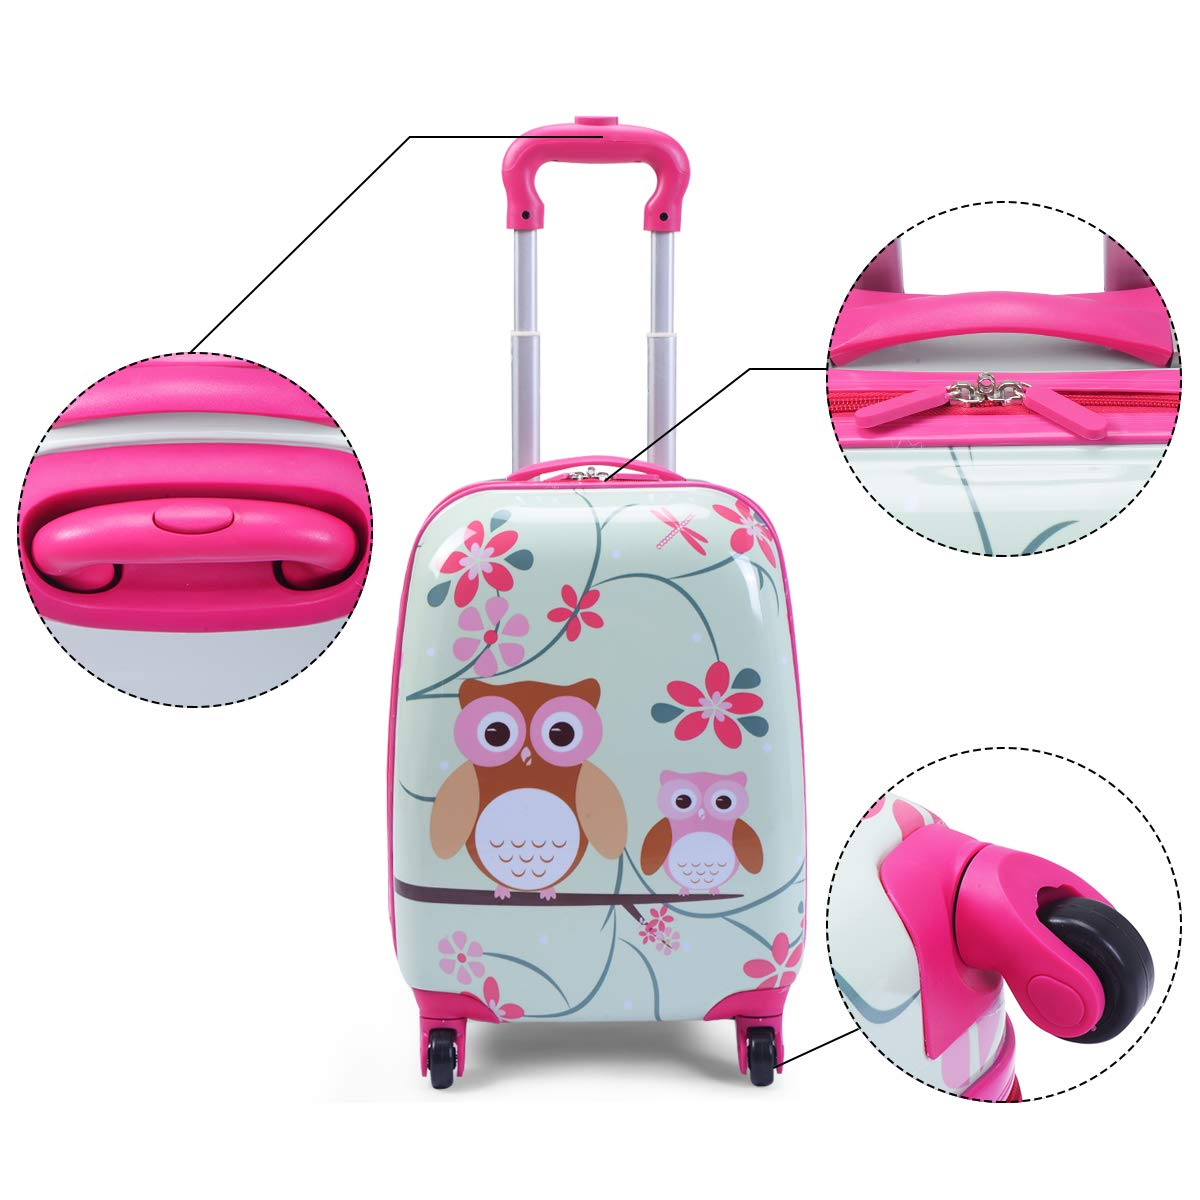 Goplus 2Pc 12 16 Kids Carry On Luggage Set Upright Hard Side Hard Shell Suitcase Travel Trolley ABS